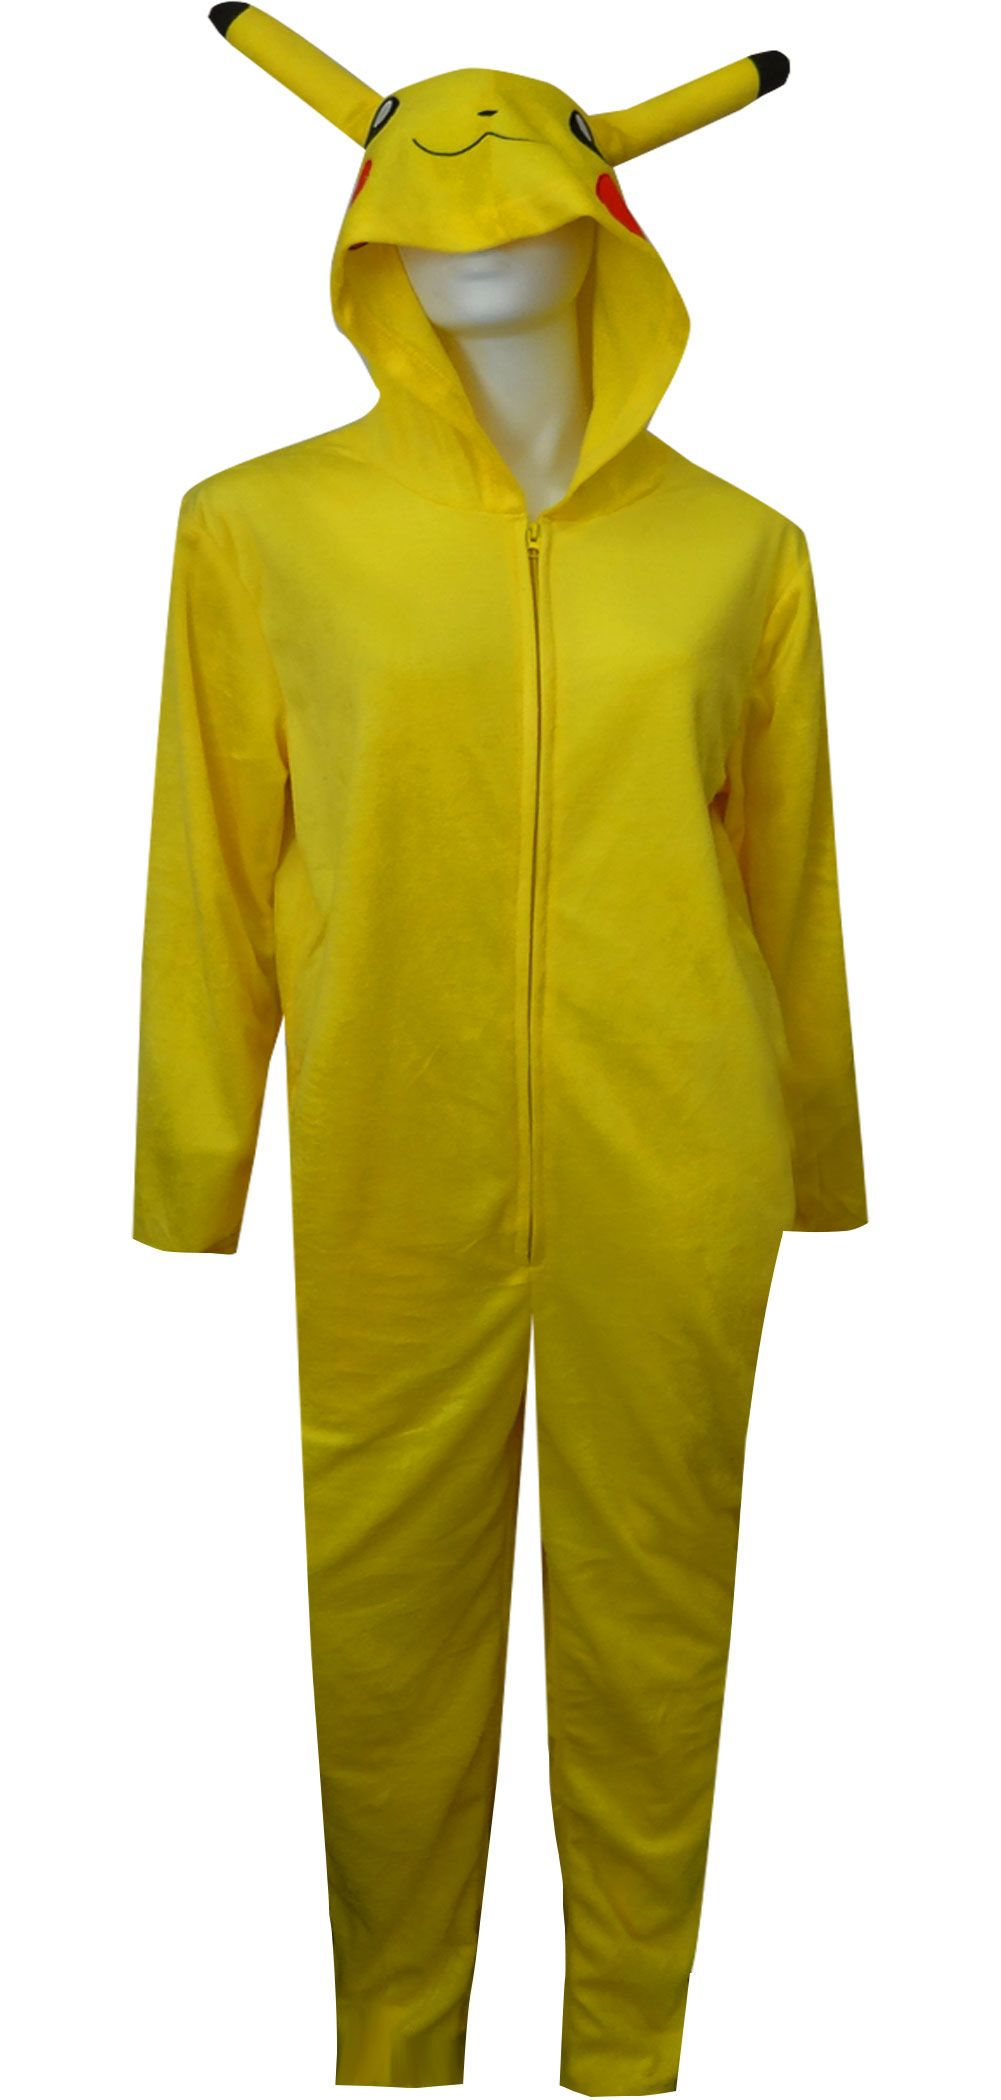 WebUndies.com Pokemon Pikachu One Piece Union Suit Pajama  8c9e4c488